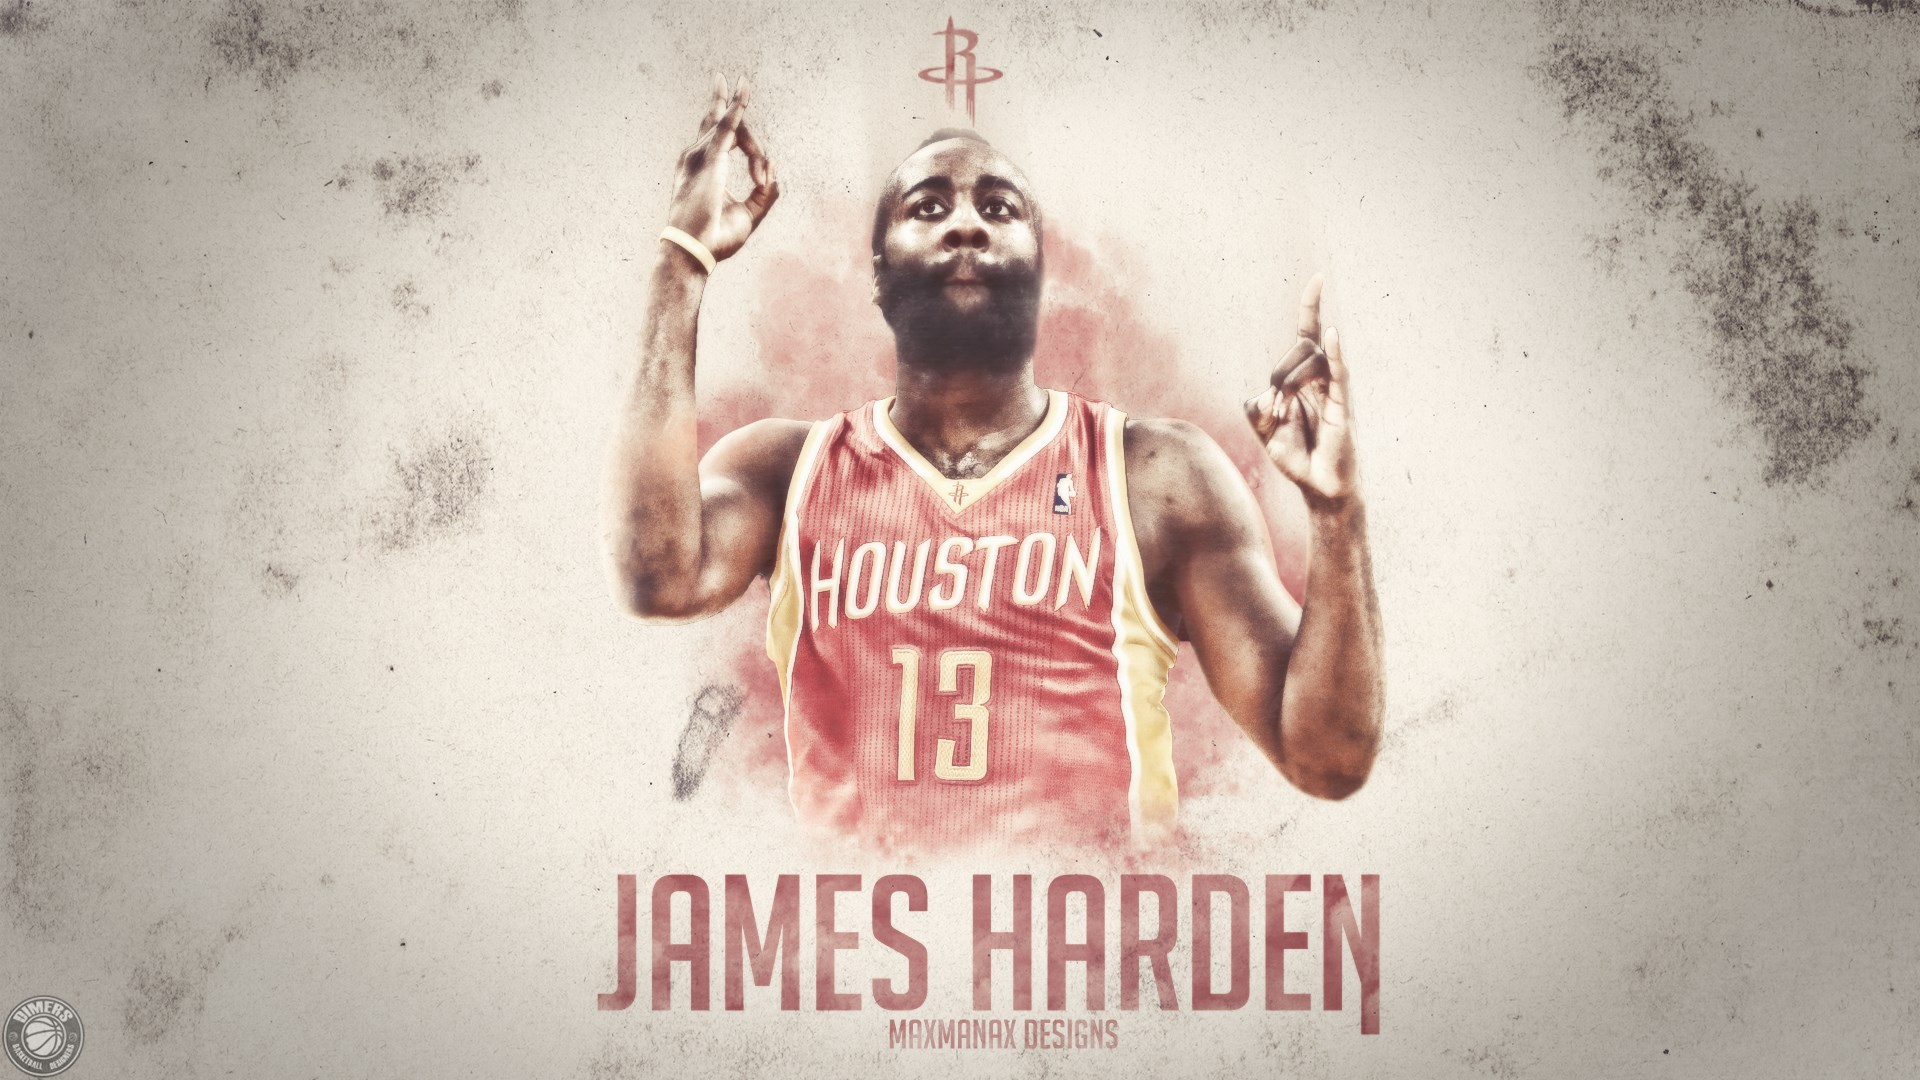 james harden fear the beard maxmanax designs wallpaper